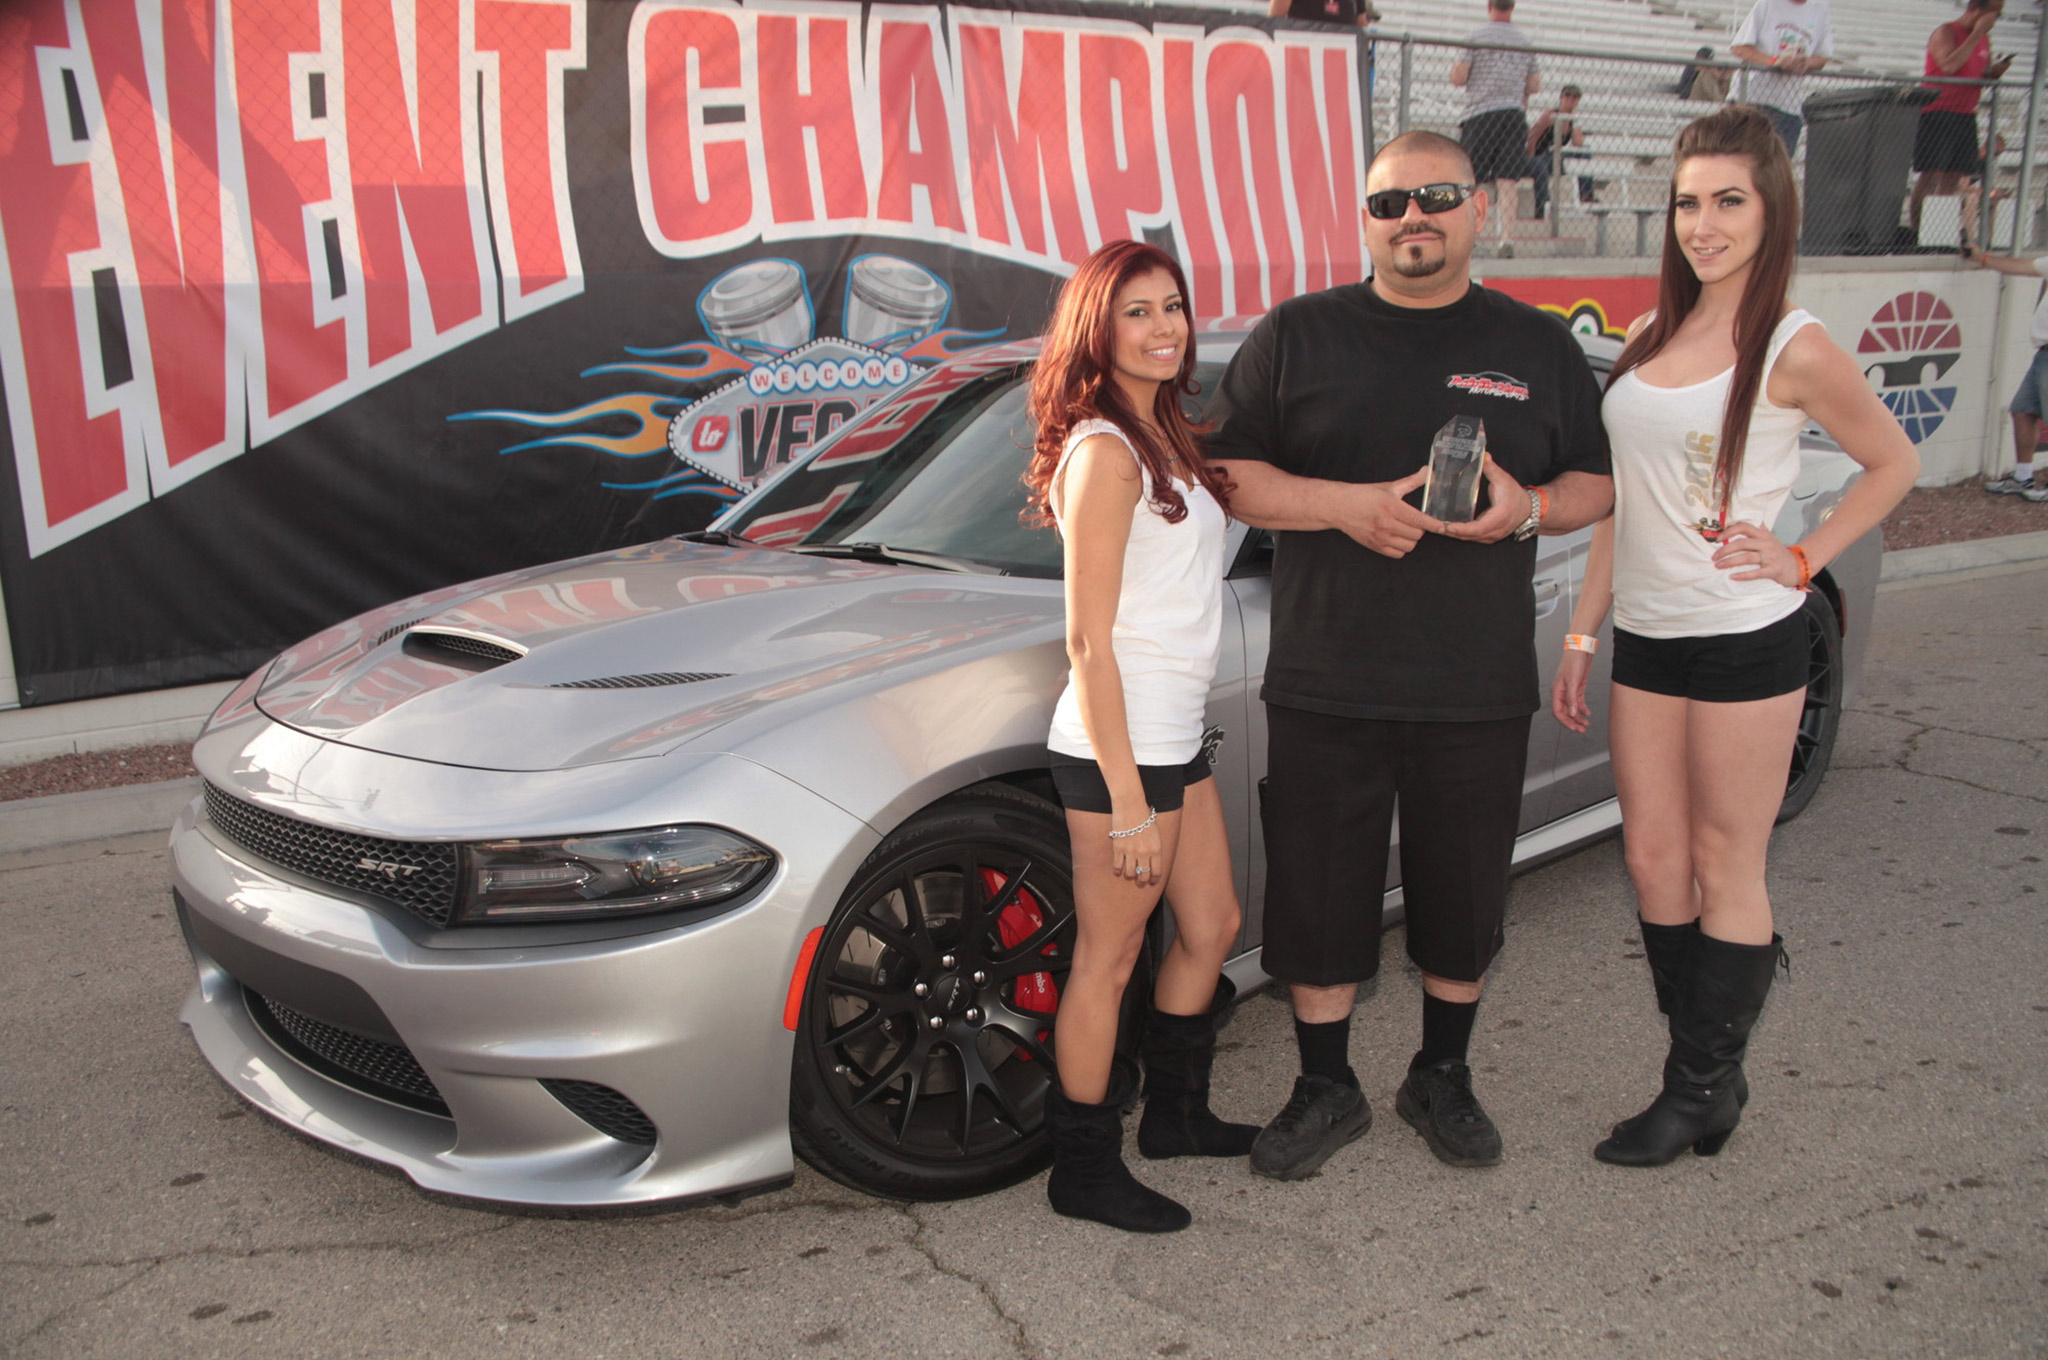 Trophy girls Jennifer and Blythe present winner Al Jimenez with the 2016 Mopar Muscle Hellcat Challenge trophy in the Las Vegas winner's circle. Think you can build a faster Hellcat or drive it better than Al? He says he'll be glad to take you on next year! Same place, same time.